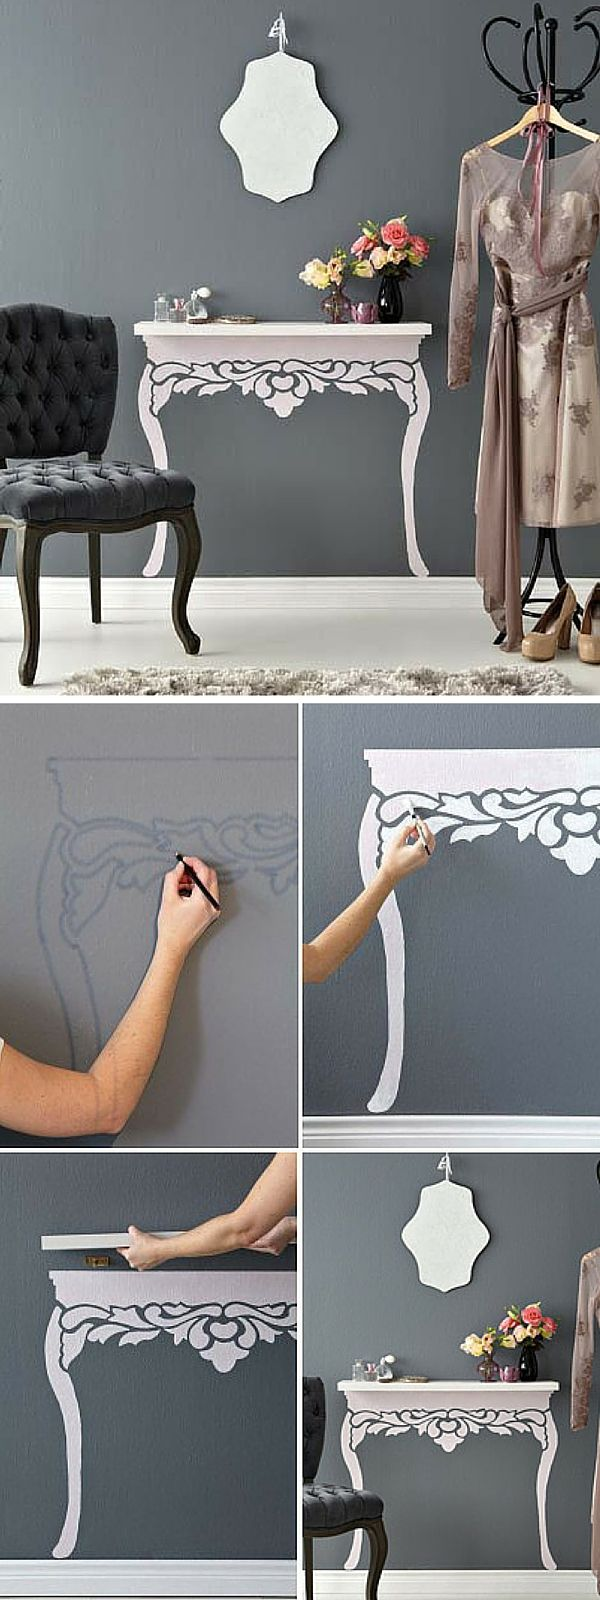 25 unique wall decor crafts ideas on pinterest wall paper diy 25 unique wall decor crafts ideas on pinterest wall paper diy paper wall decor and diy wallart amipublicfo Images